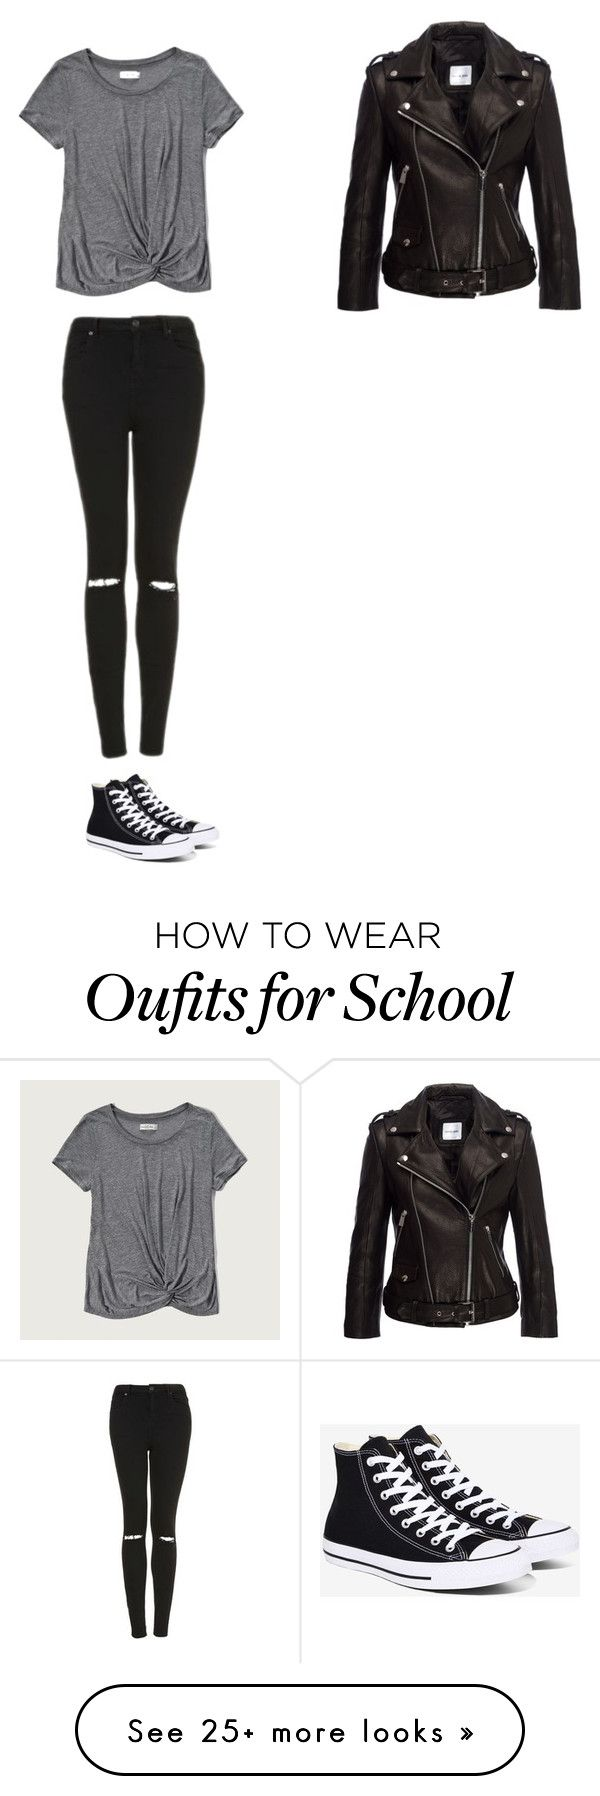 """First day of school"" by artist123-1 on Polyvore featuring Abercrombie & Fitch, Anine Bing, Topshop and Converse"